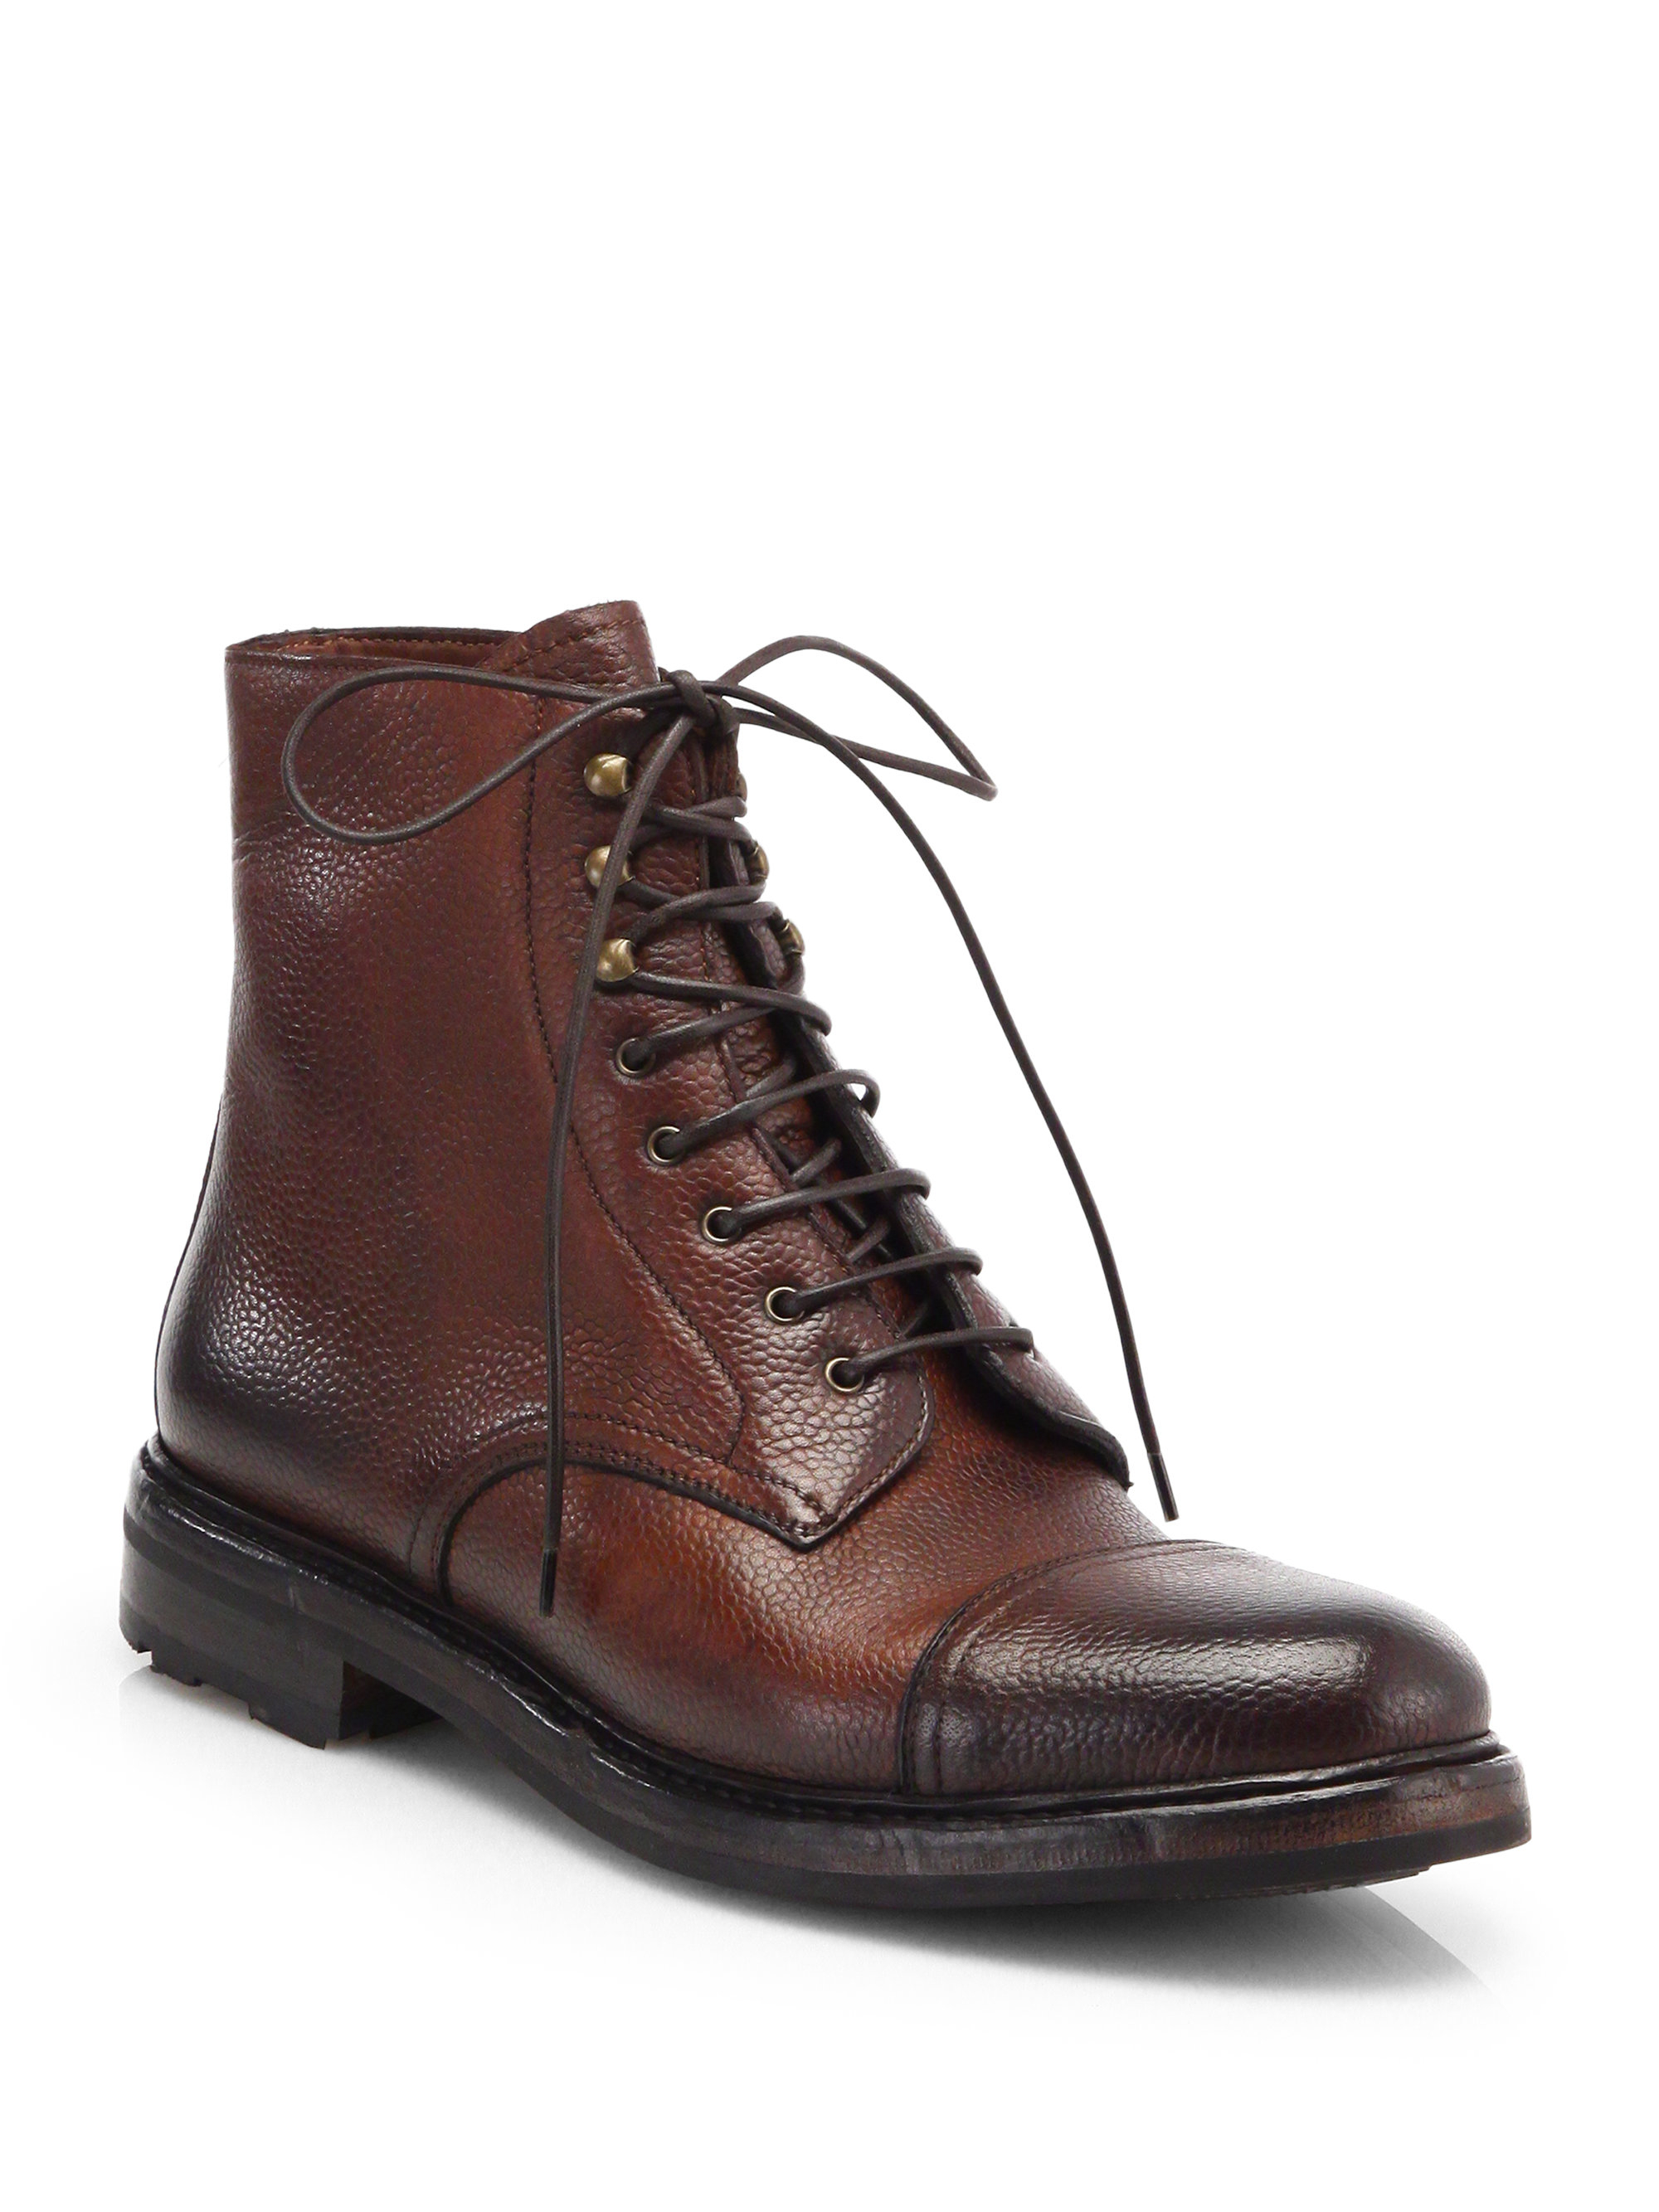 ralph mundesley distressed leather lace up boots in